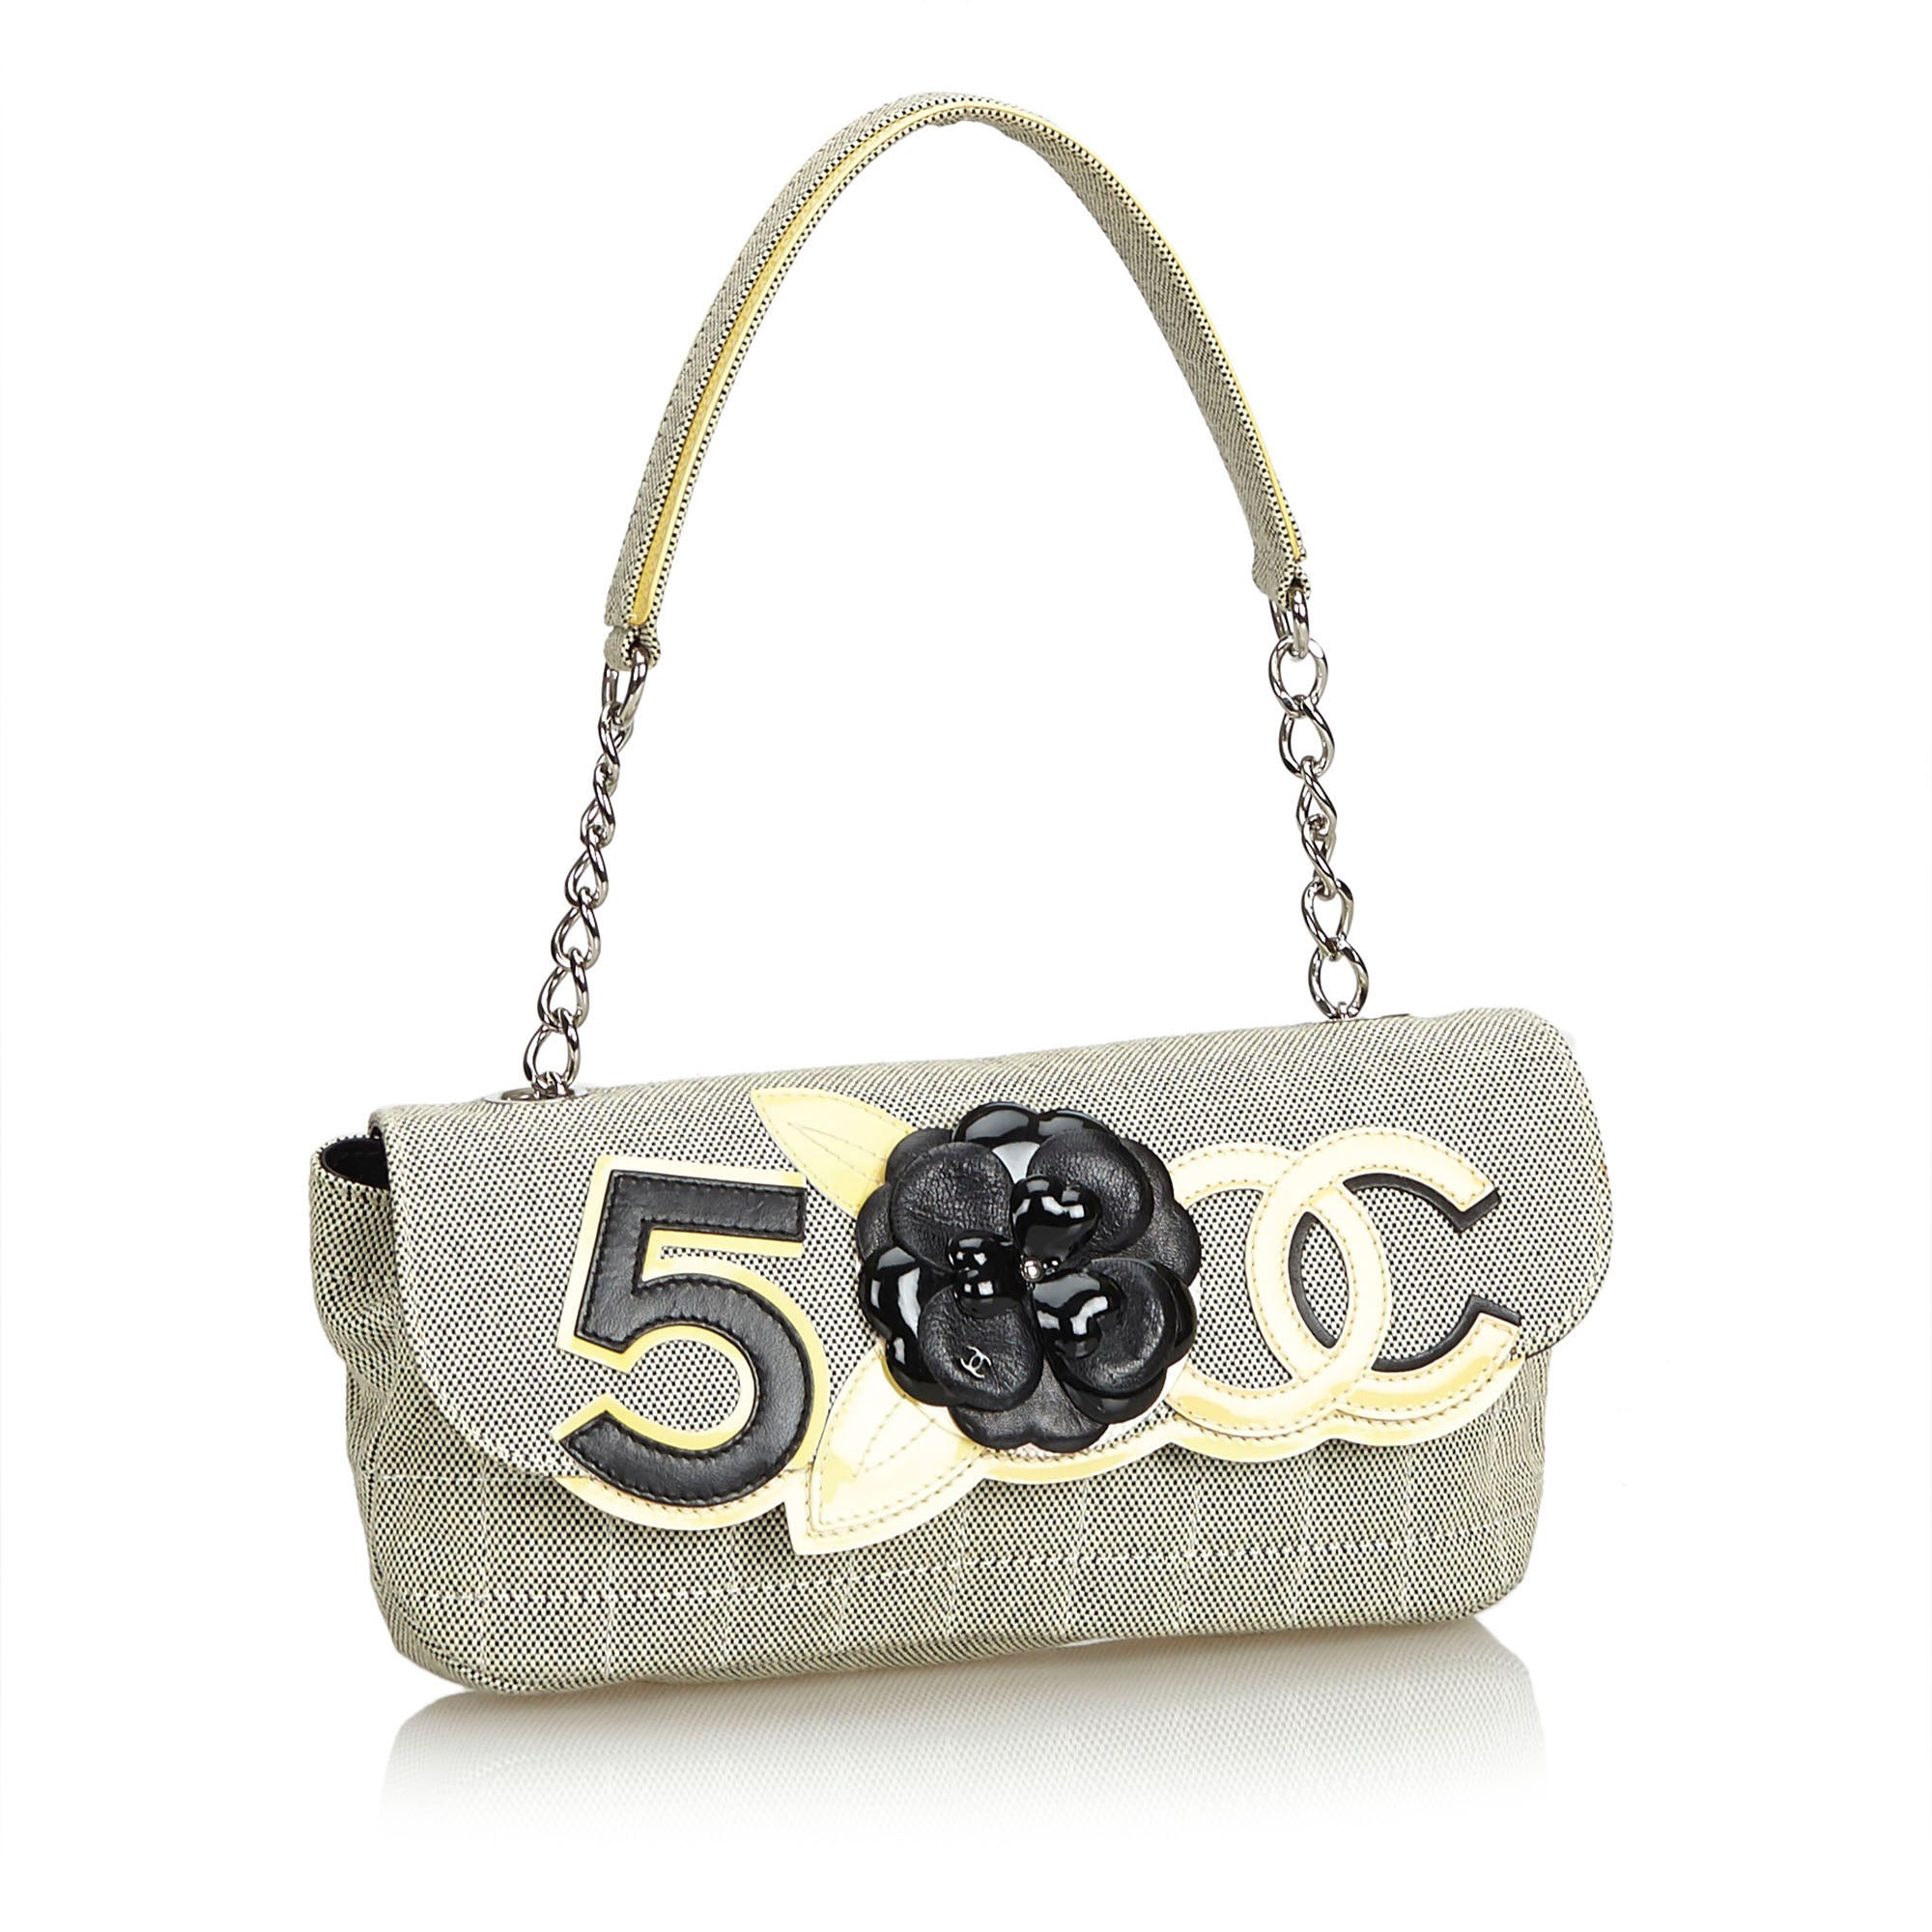 Chanel Camellia No. 5 Baguette - Iconics Preloved Luxury